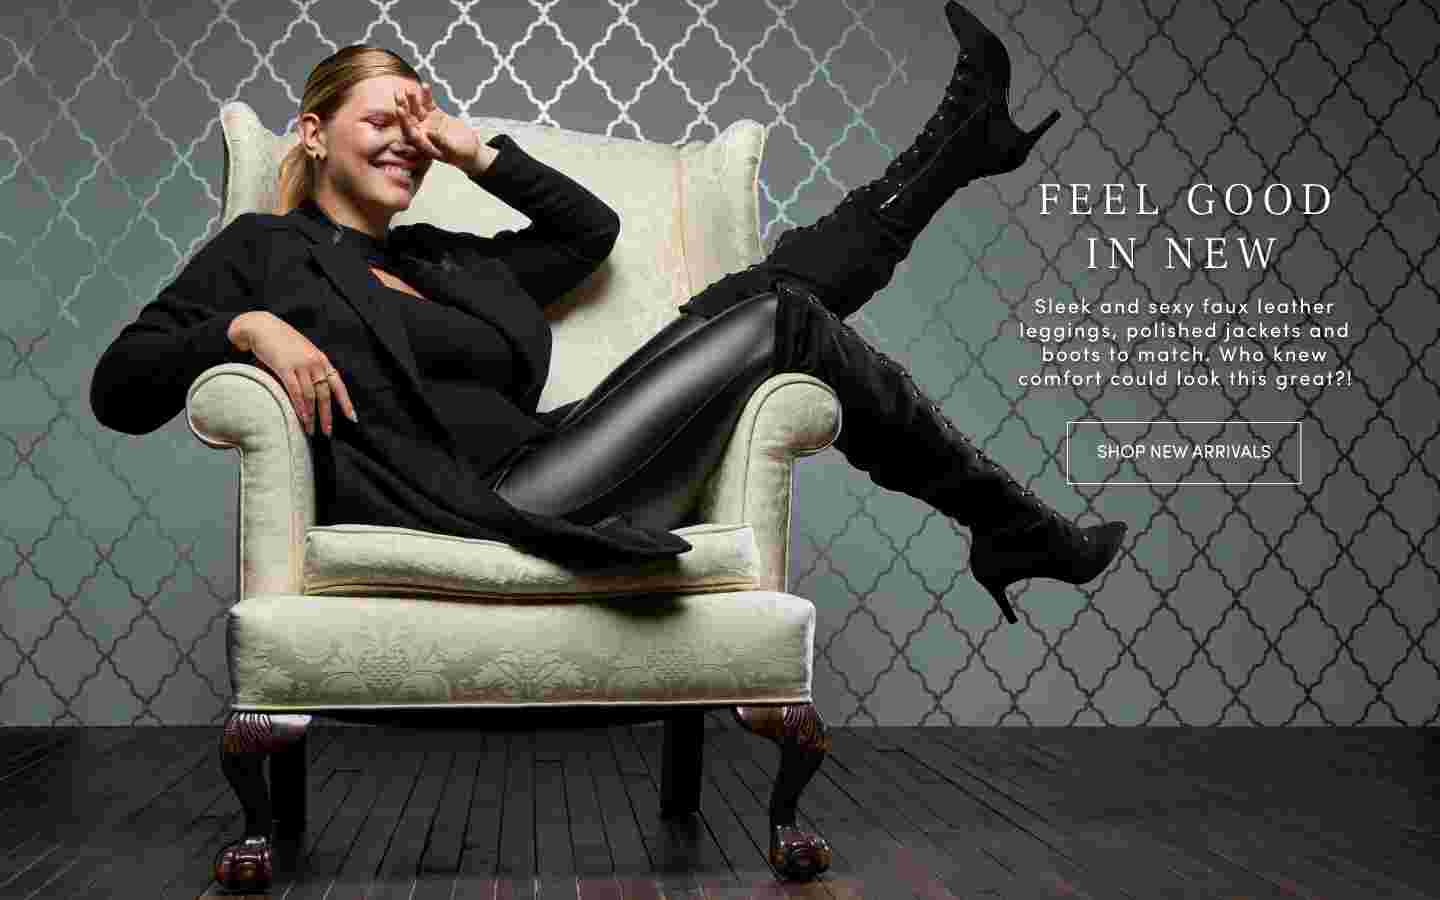 Feel Good in New Sleek and sexy faux leather leggings, polished jackets and boots to match. Who knew comfort could look this great?! Shop New Arrivals